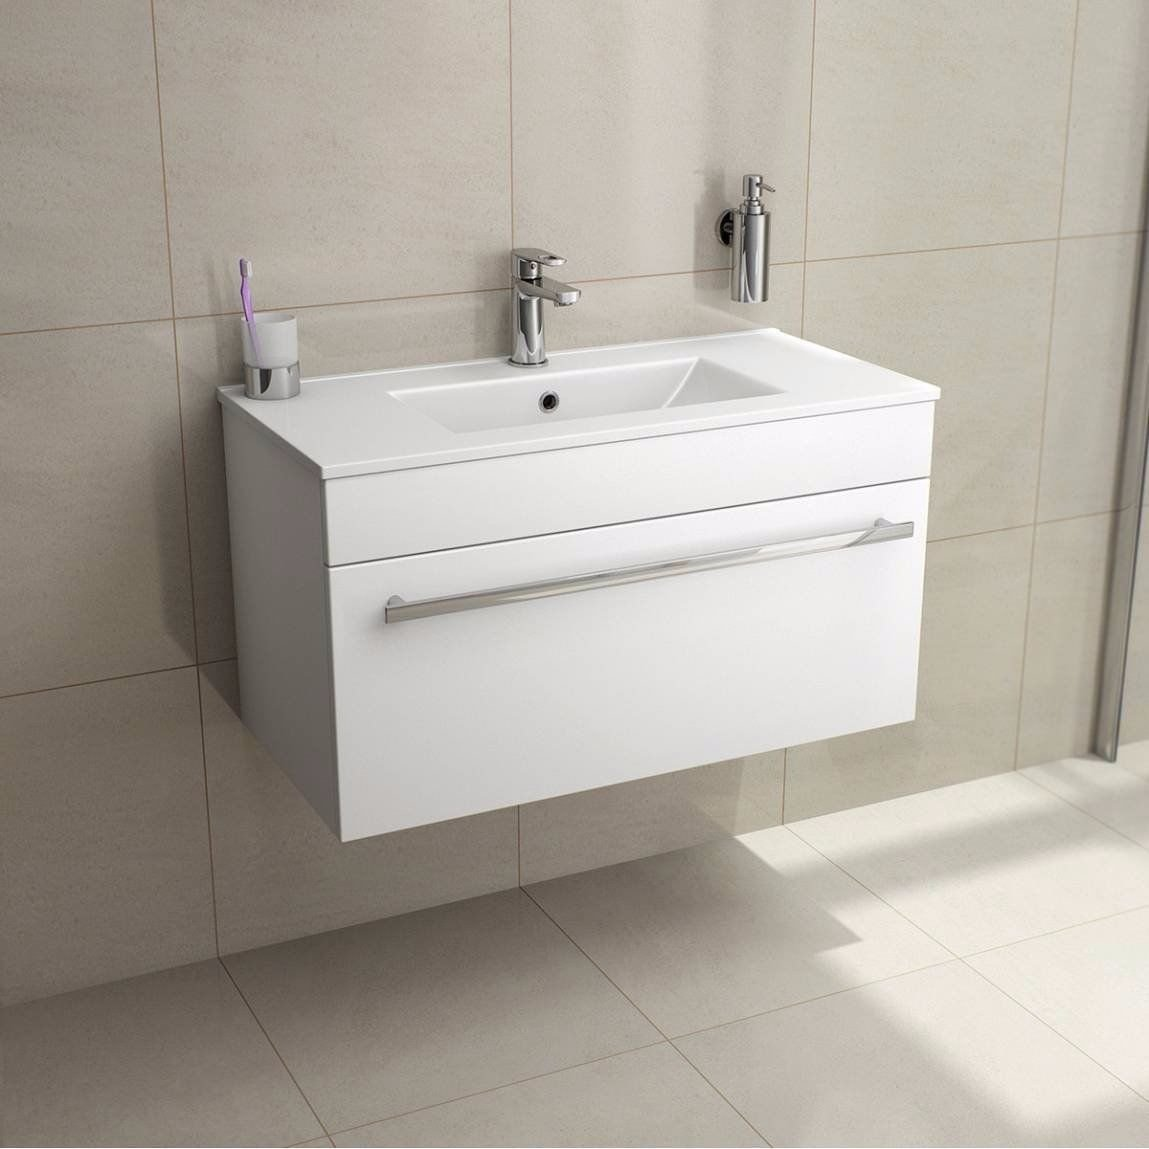 Lifestyle 600 Wall Mounted Hung Vanity Unit with Ceramic Basin Sink Underbasin Cabinet Cupboard Bathroom Furniture White High Gloss Vebath